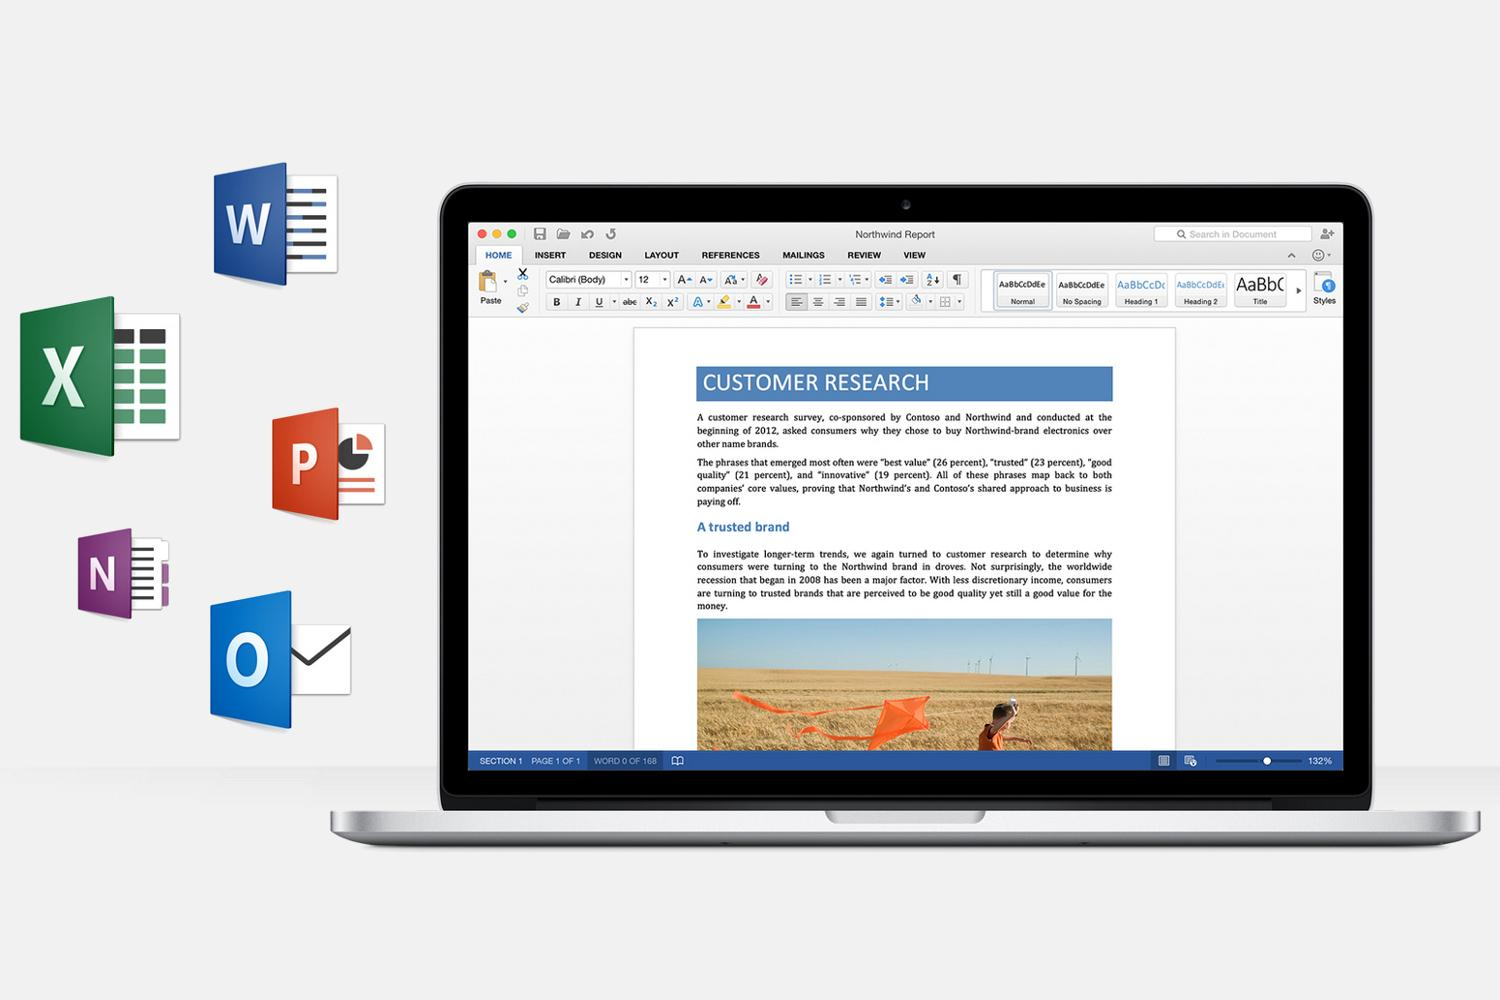 Microsoft Loves Google: Outlook for Mac Getting New Features for Google Users